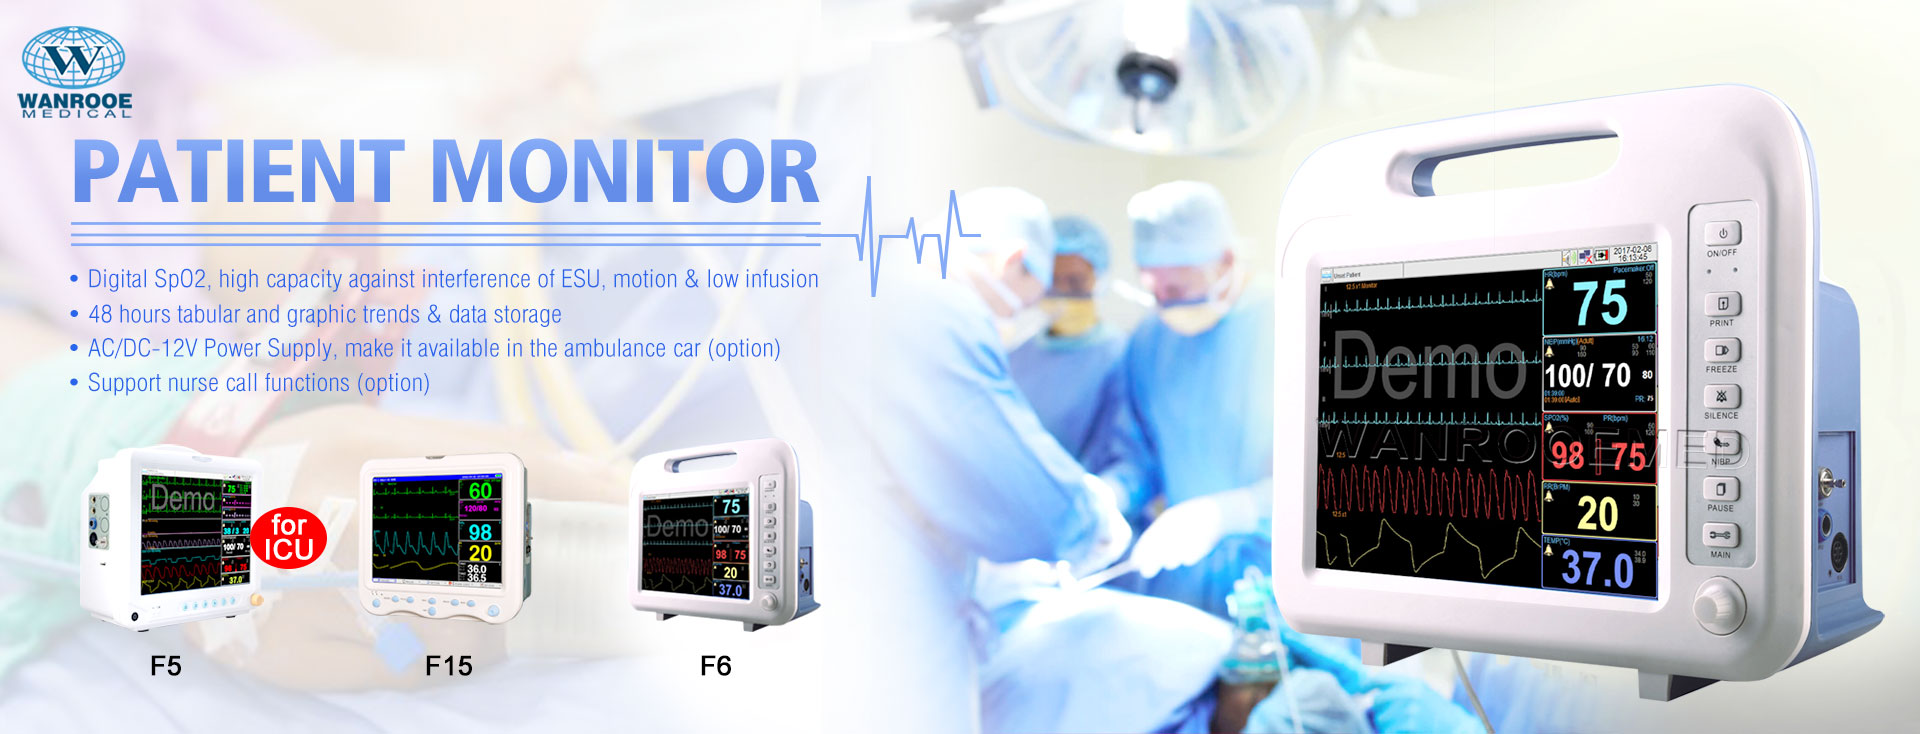 Patient Monitor, ICU Patient Monitor, Portable Patient Monitor, Multi Parameter Patient Monitor